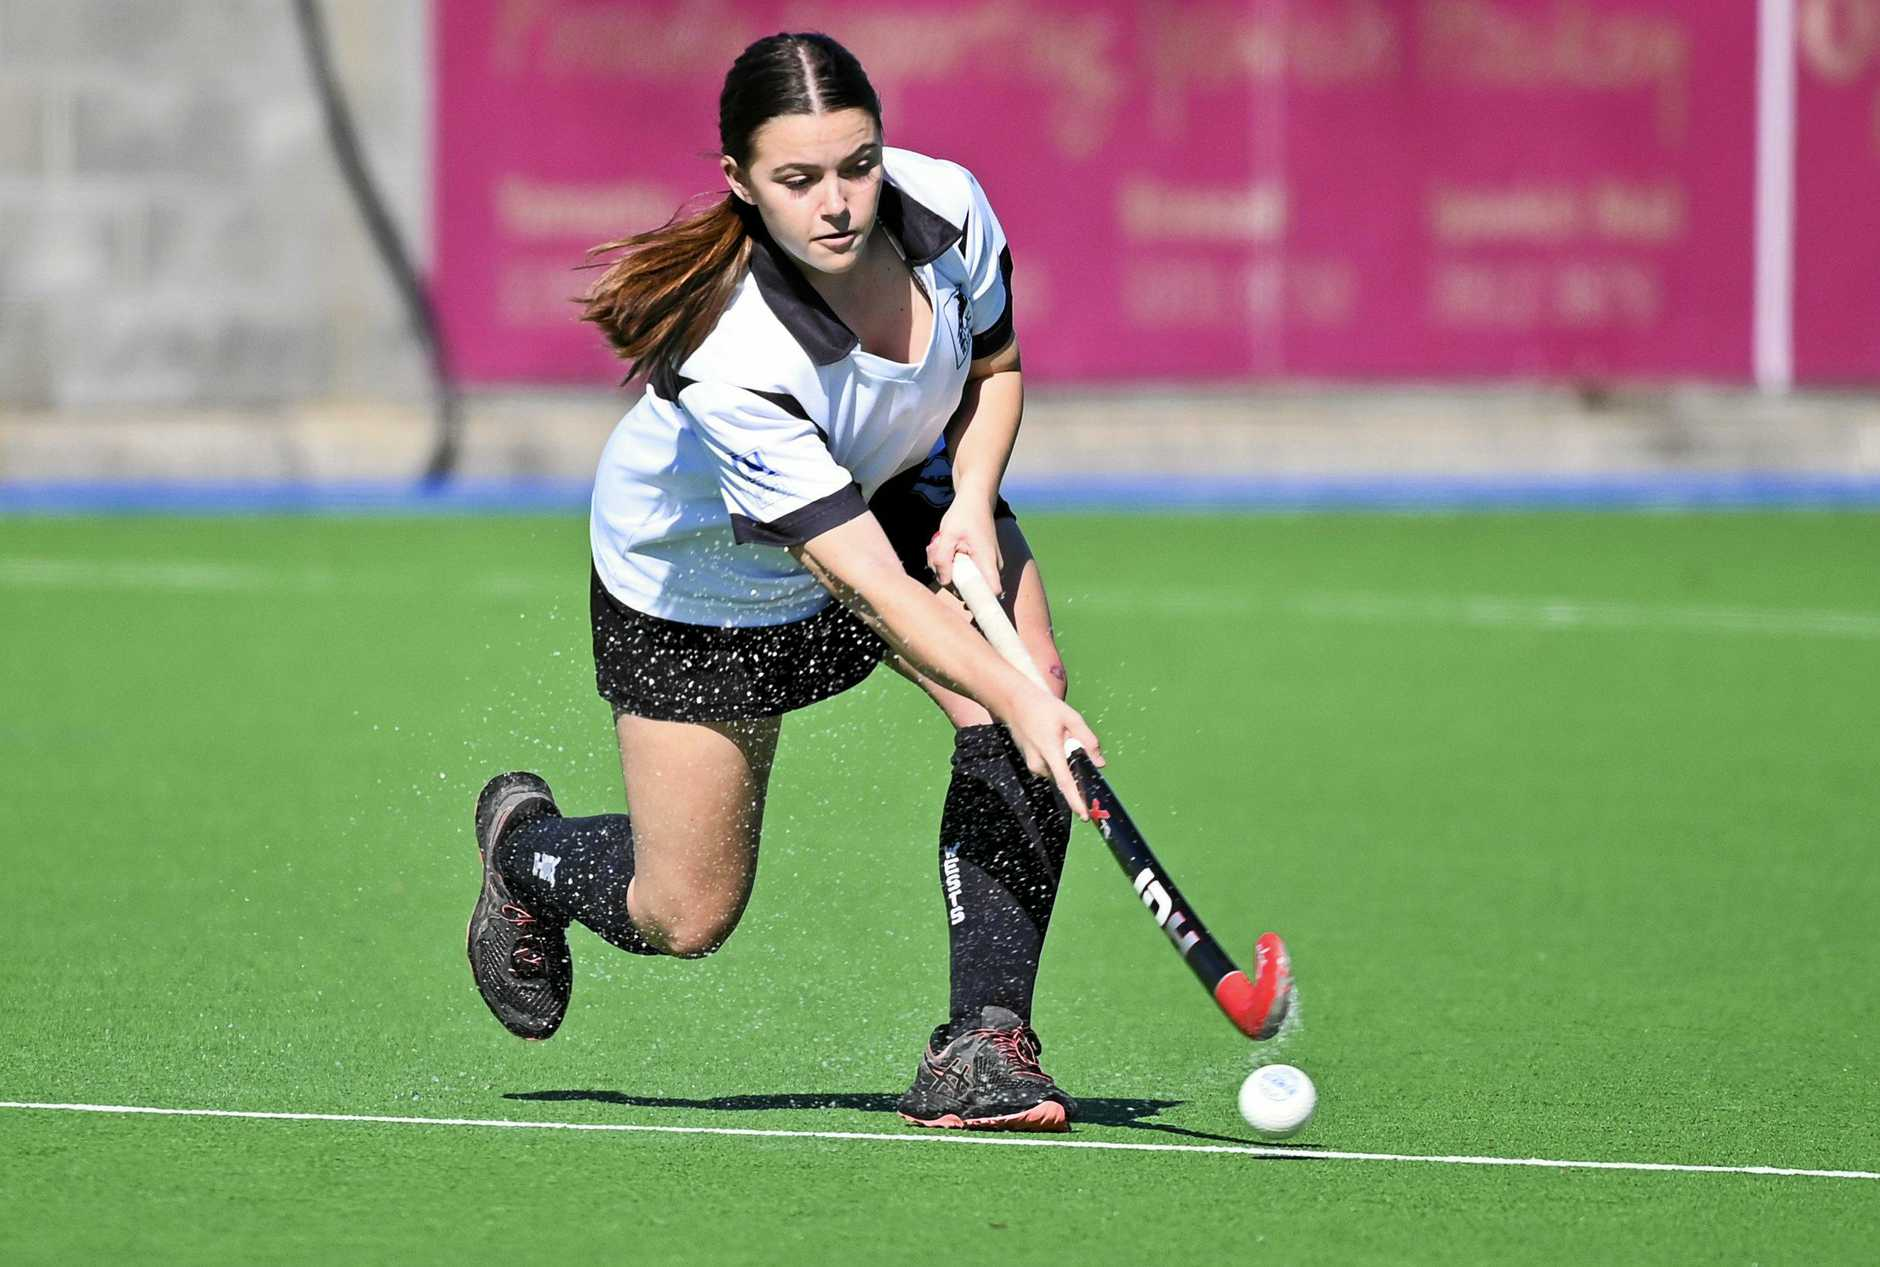 SHARP SKILLS: Wests' A-Grade talent Jemma Payne is one of the